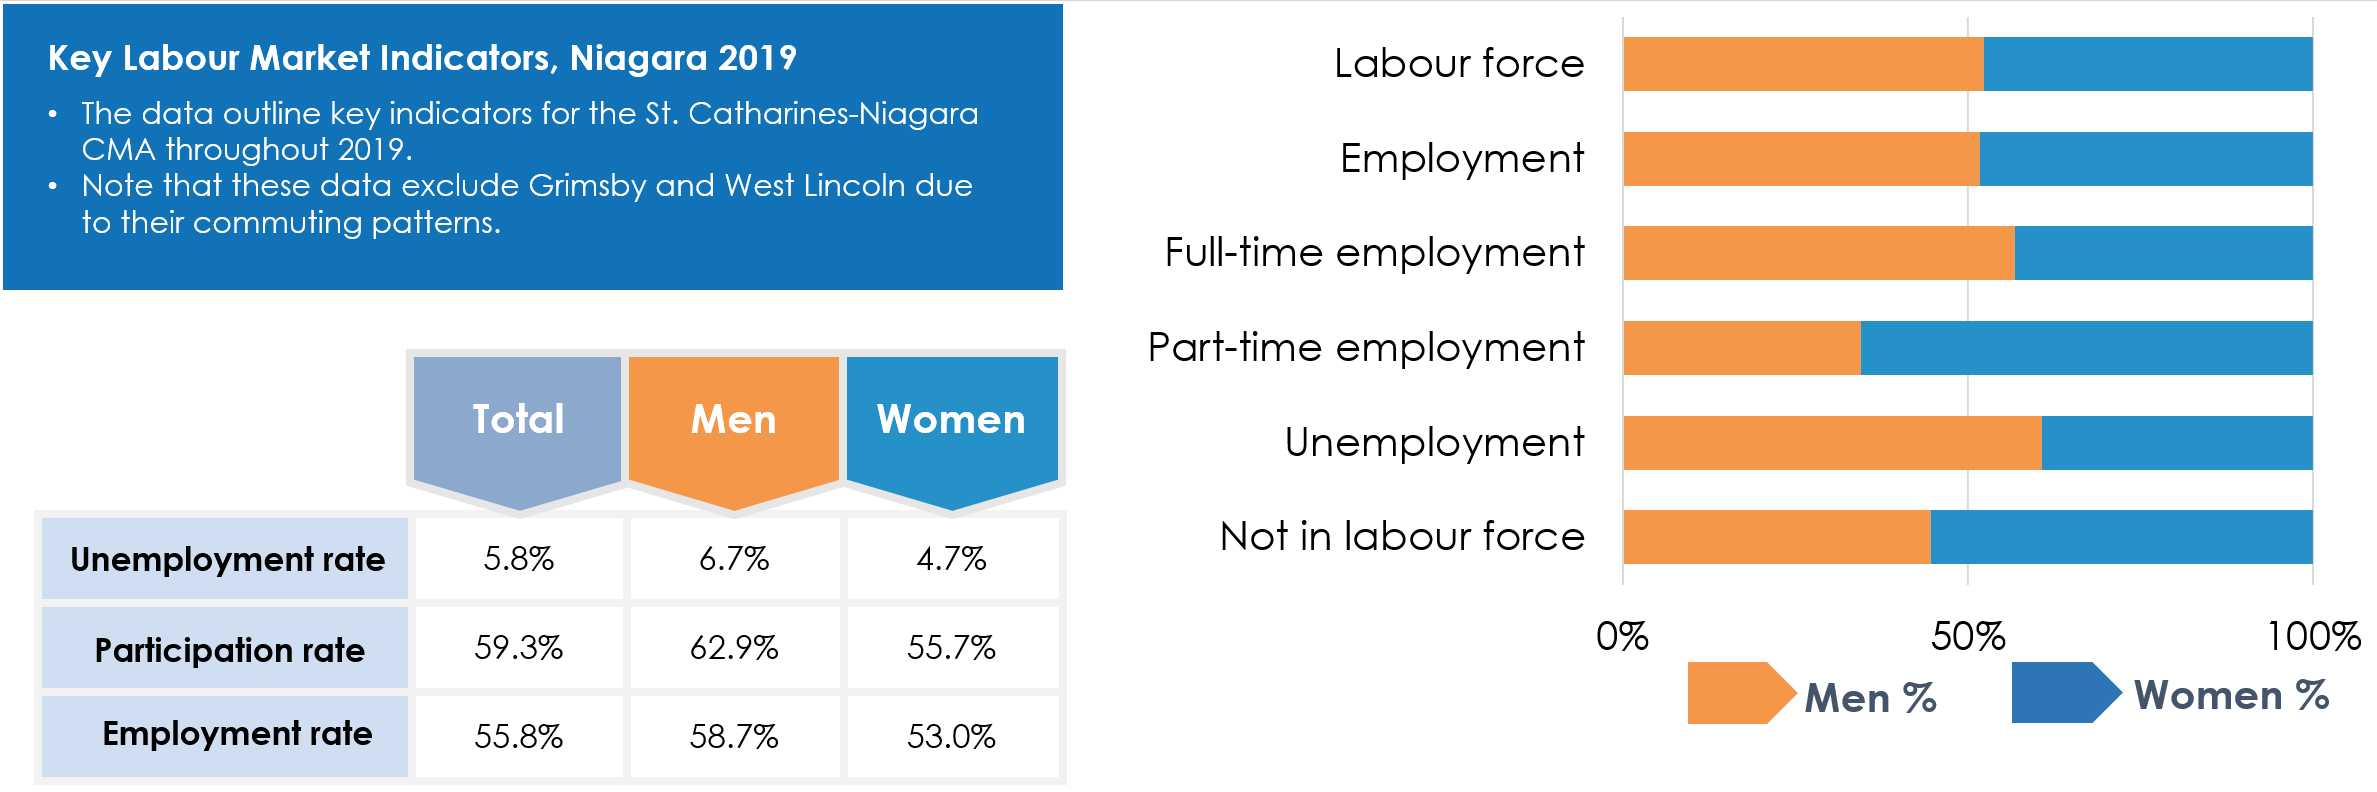 Infographic showing the following data: In 2019, the unemployment rate in the St. Catharines-Niagara CMA was at 5.8% overall, 6.7% for men and 4.7% for women. The participation rate was 59.3% overall, with 62.9% of working-age men represented and 55.7% of working-age women. The employment rate totaled 55.8%, with 58.7% for men and 53.0% for women. The labour force and employment rate has fairly equal representation, with men showing greater representation in full-time employment and women more likely to be in part-time employment.